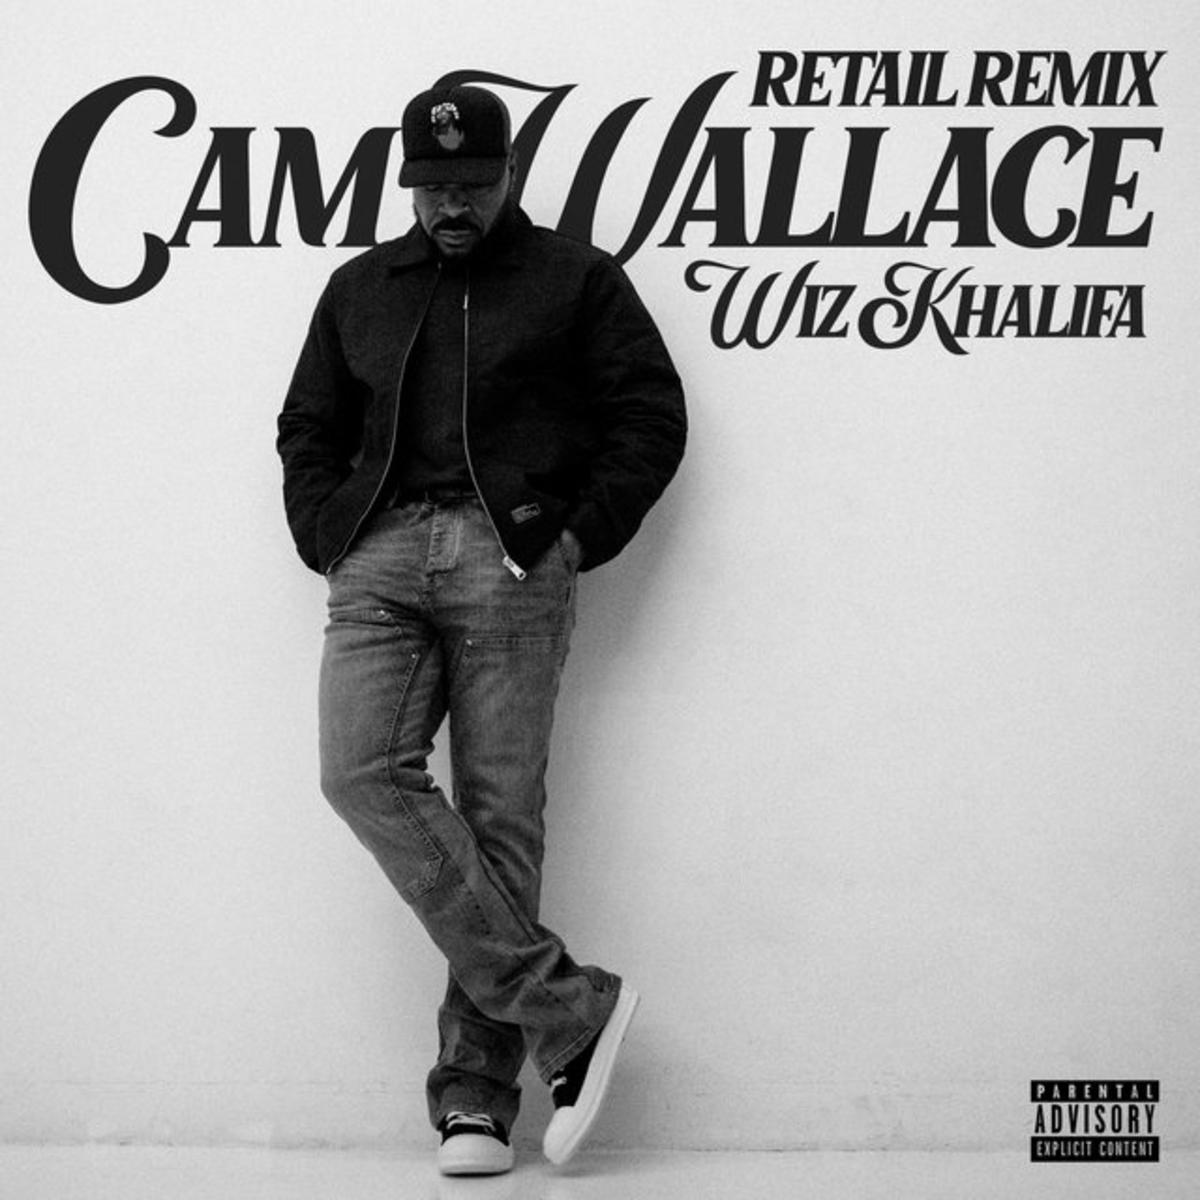 Cam Wallace Retail (Remix) Mp3 Download